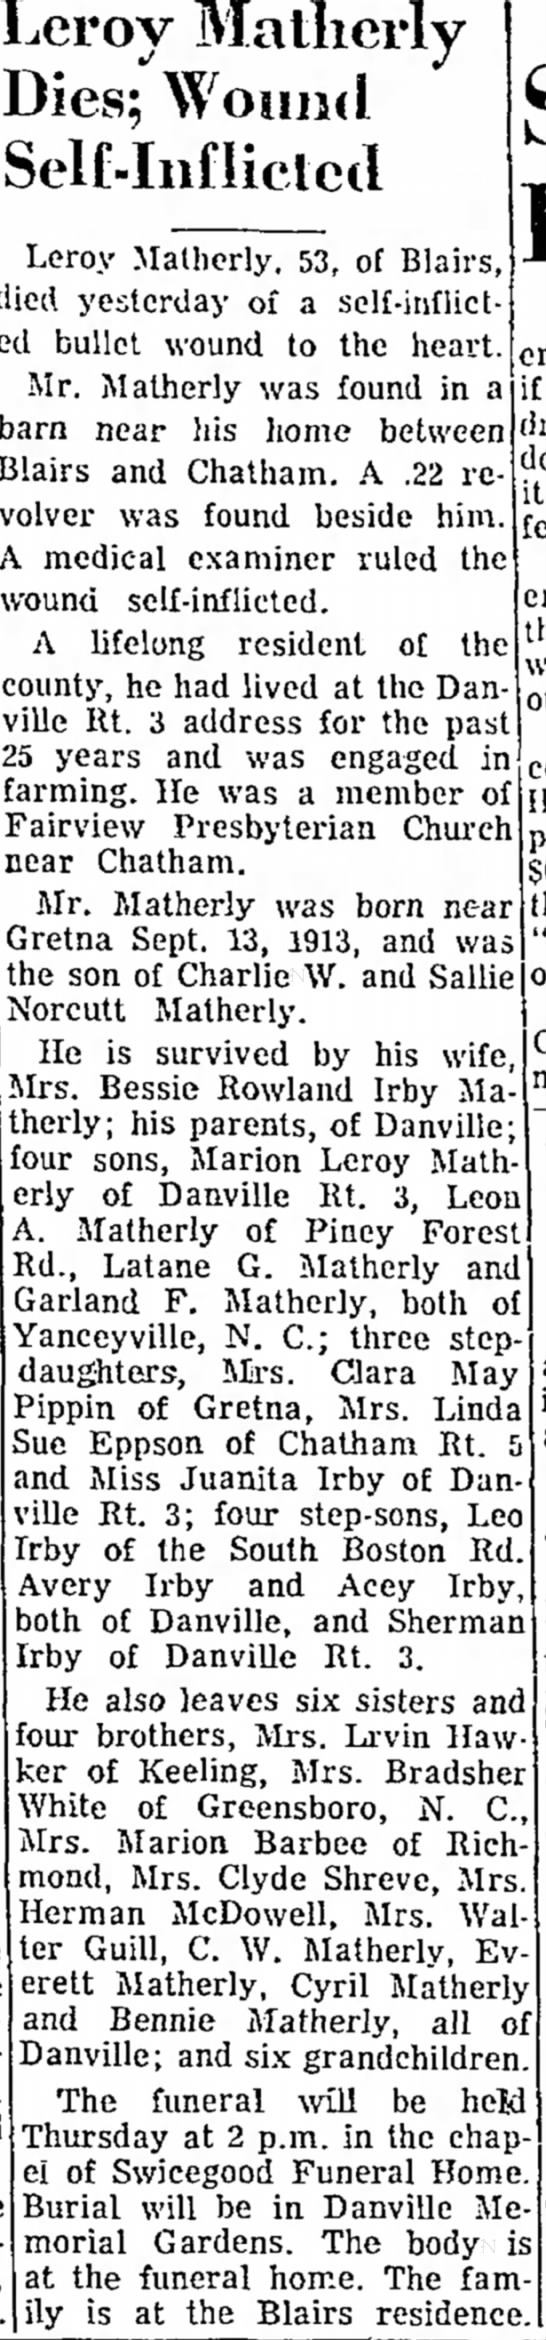 The Danville Register (Danville, VA) 15 March 1967 - Leroy Matlierly Dies; Wound SelMiiflictctl...